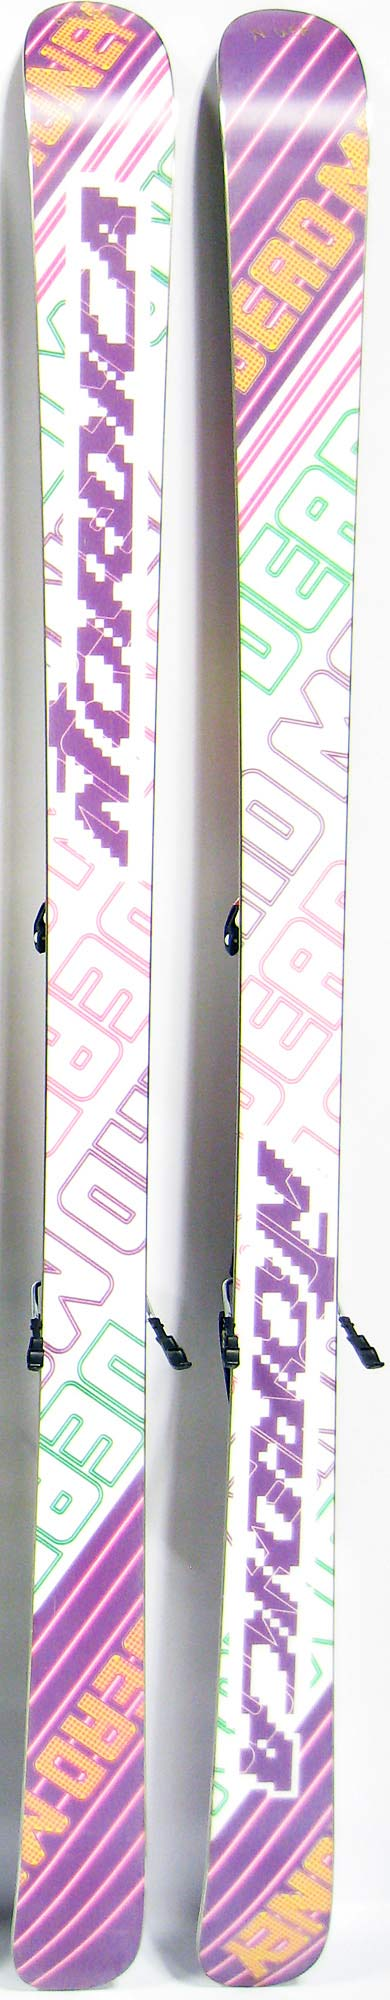 Bases of 2013 Nordica Dead Money Skis For Sale